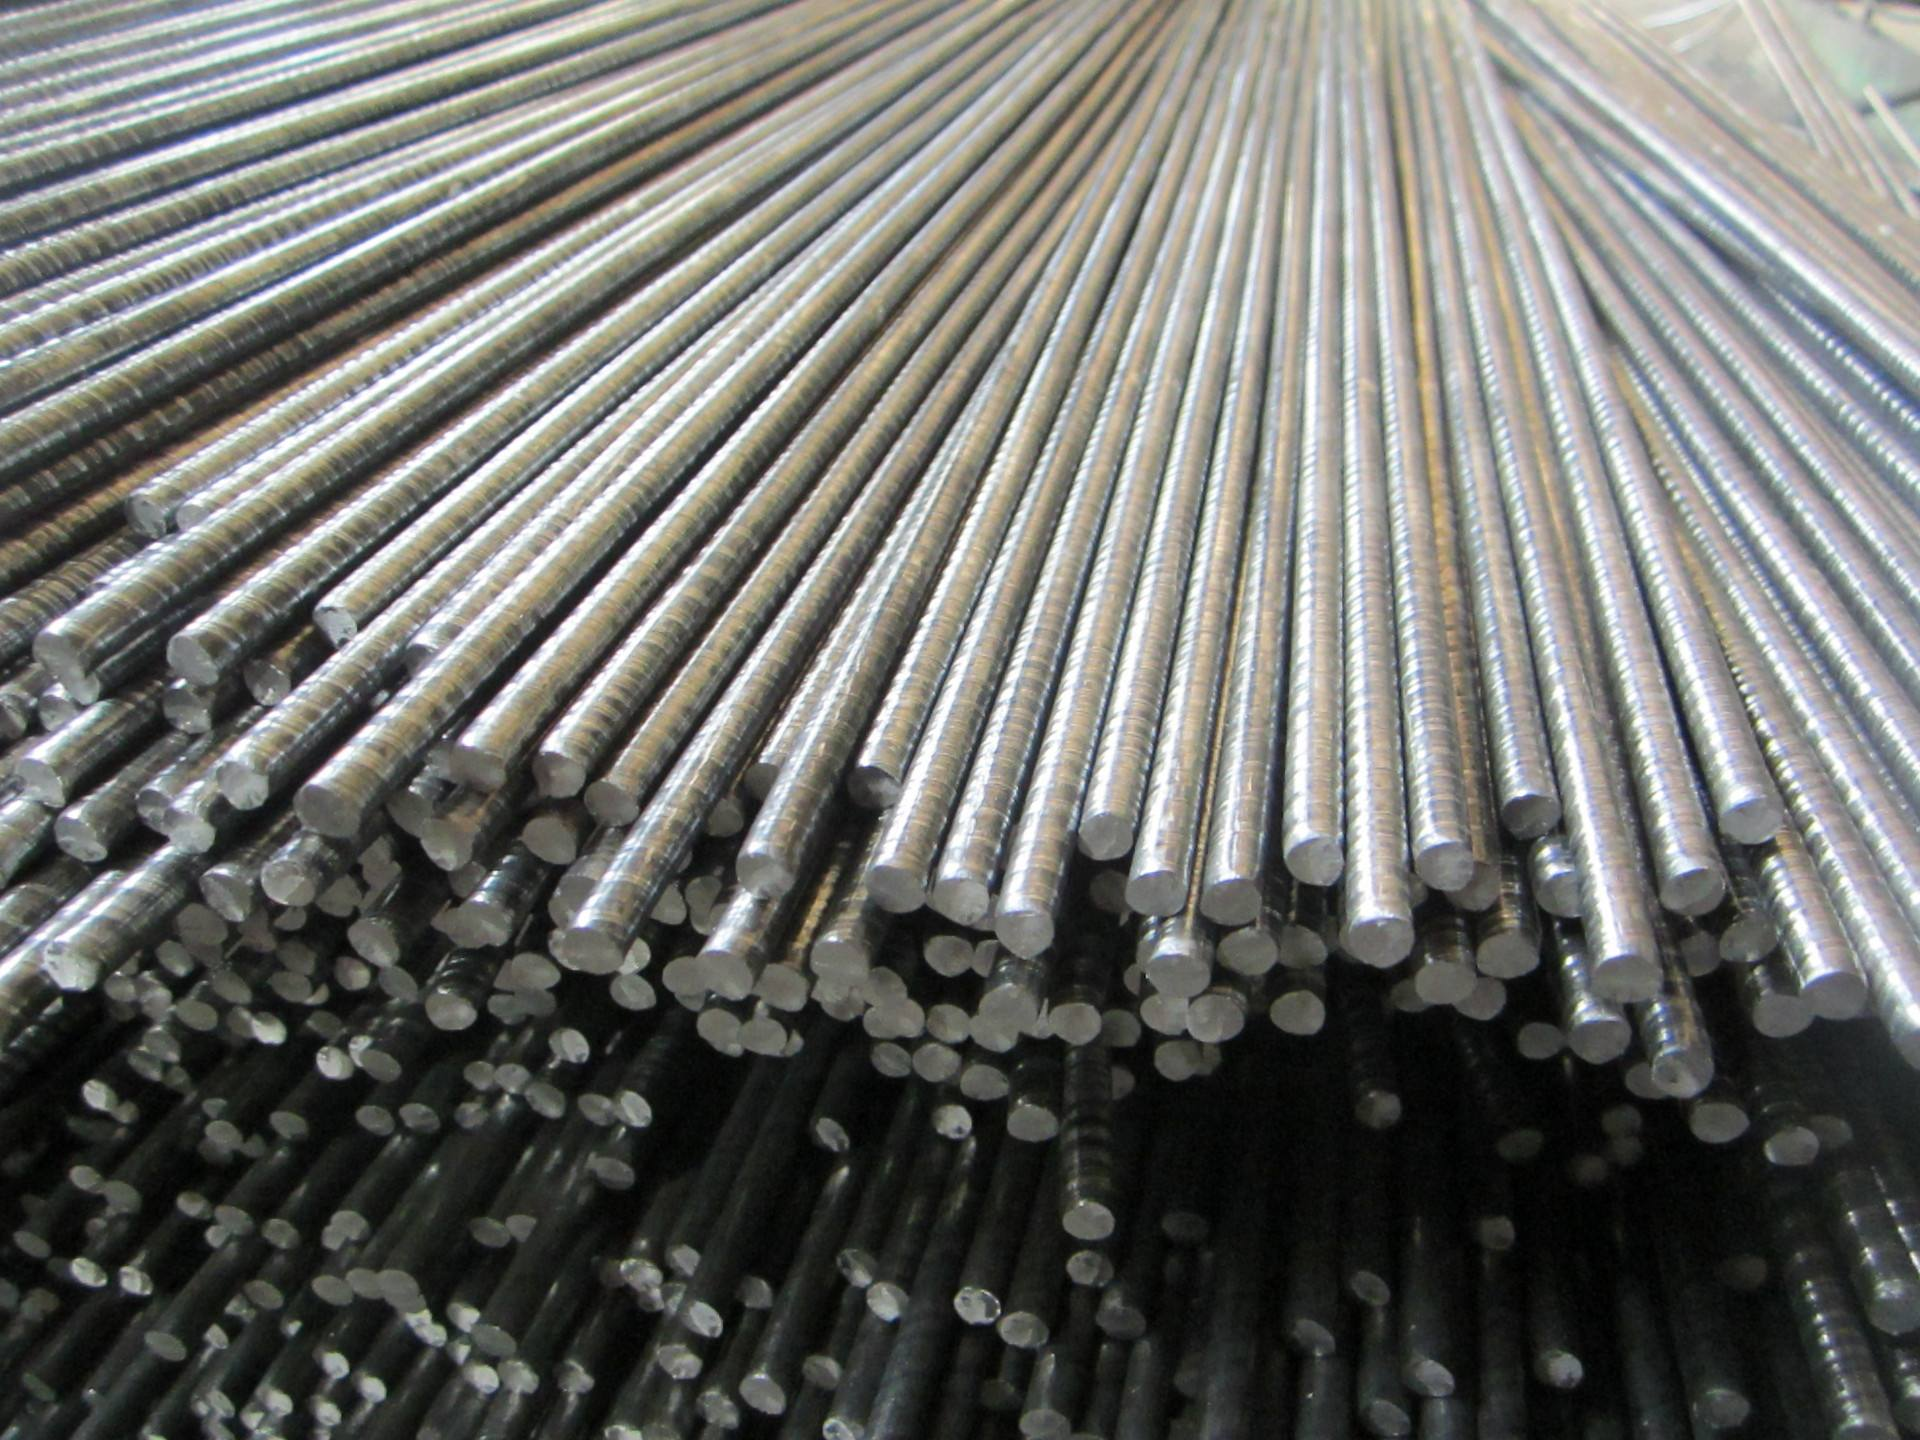 Fence Wire Straighter (2.5-6.0 mm wires)